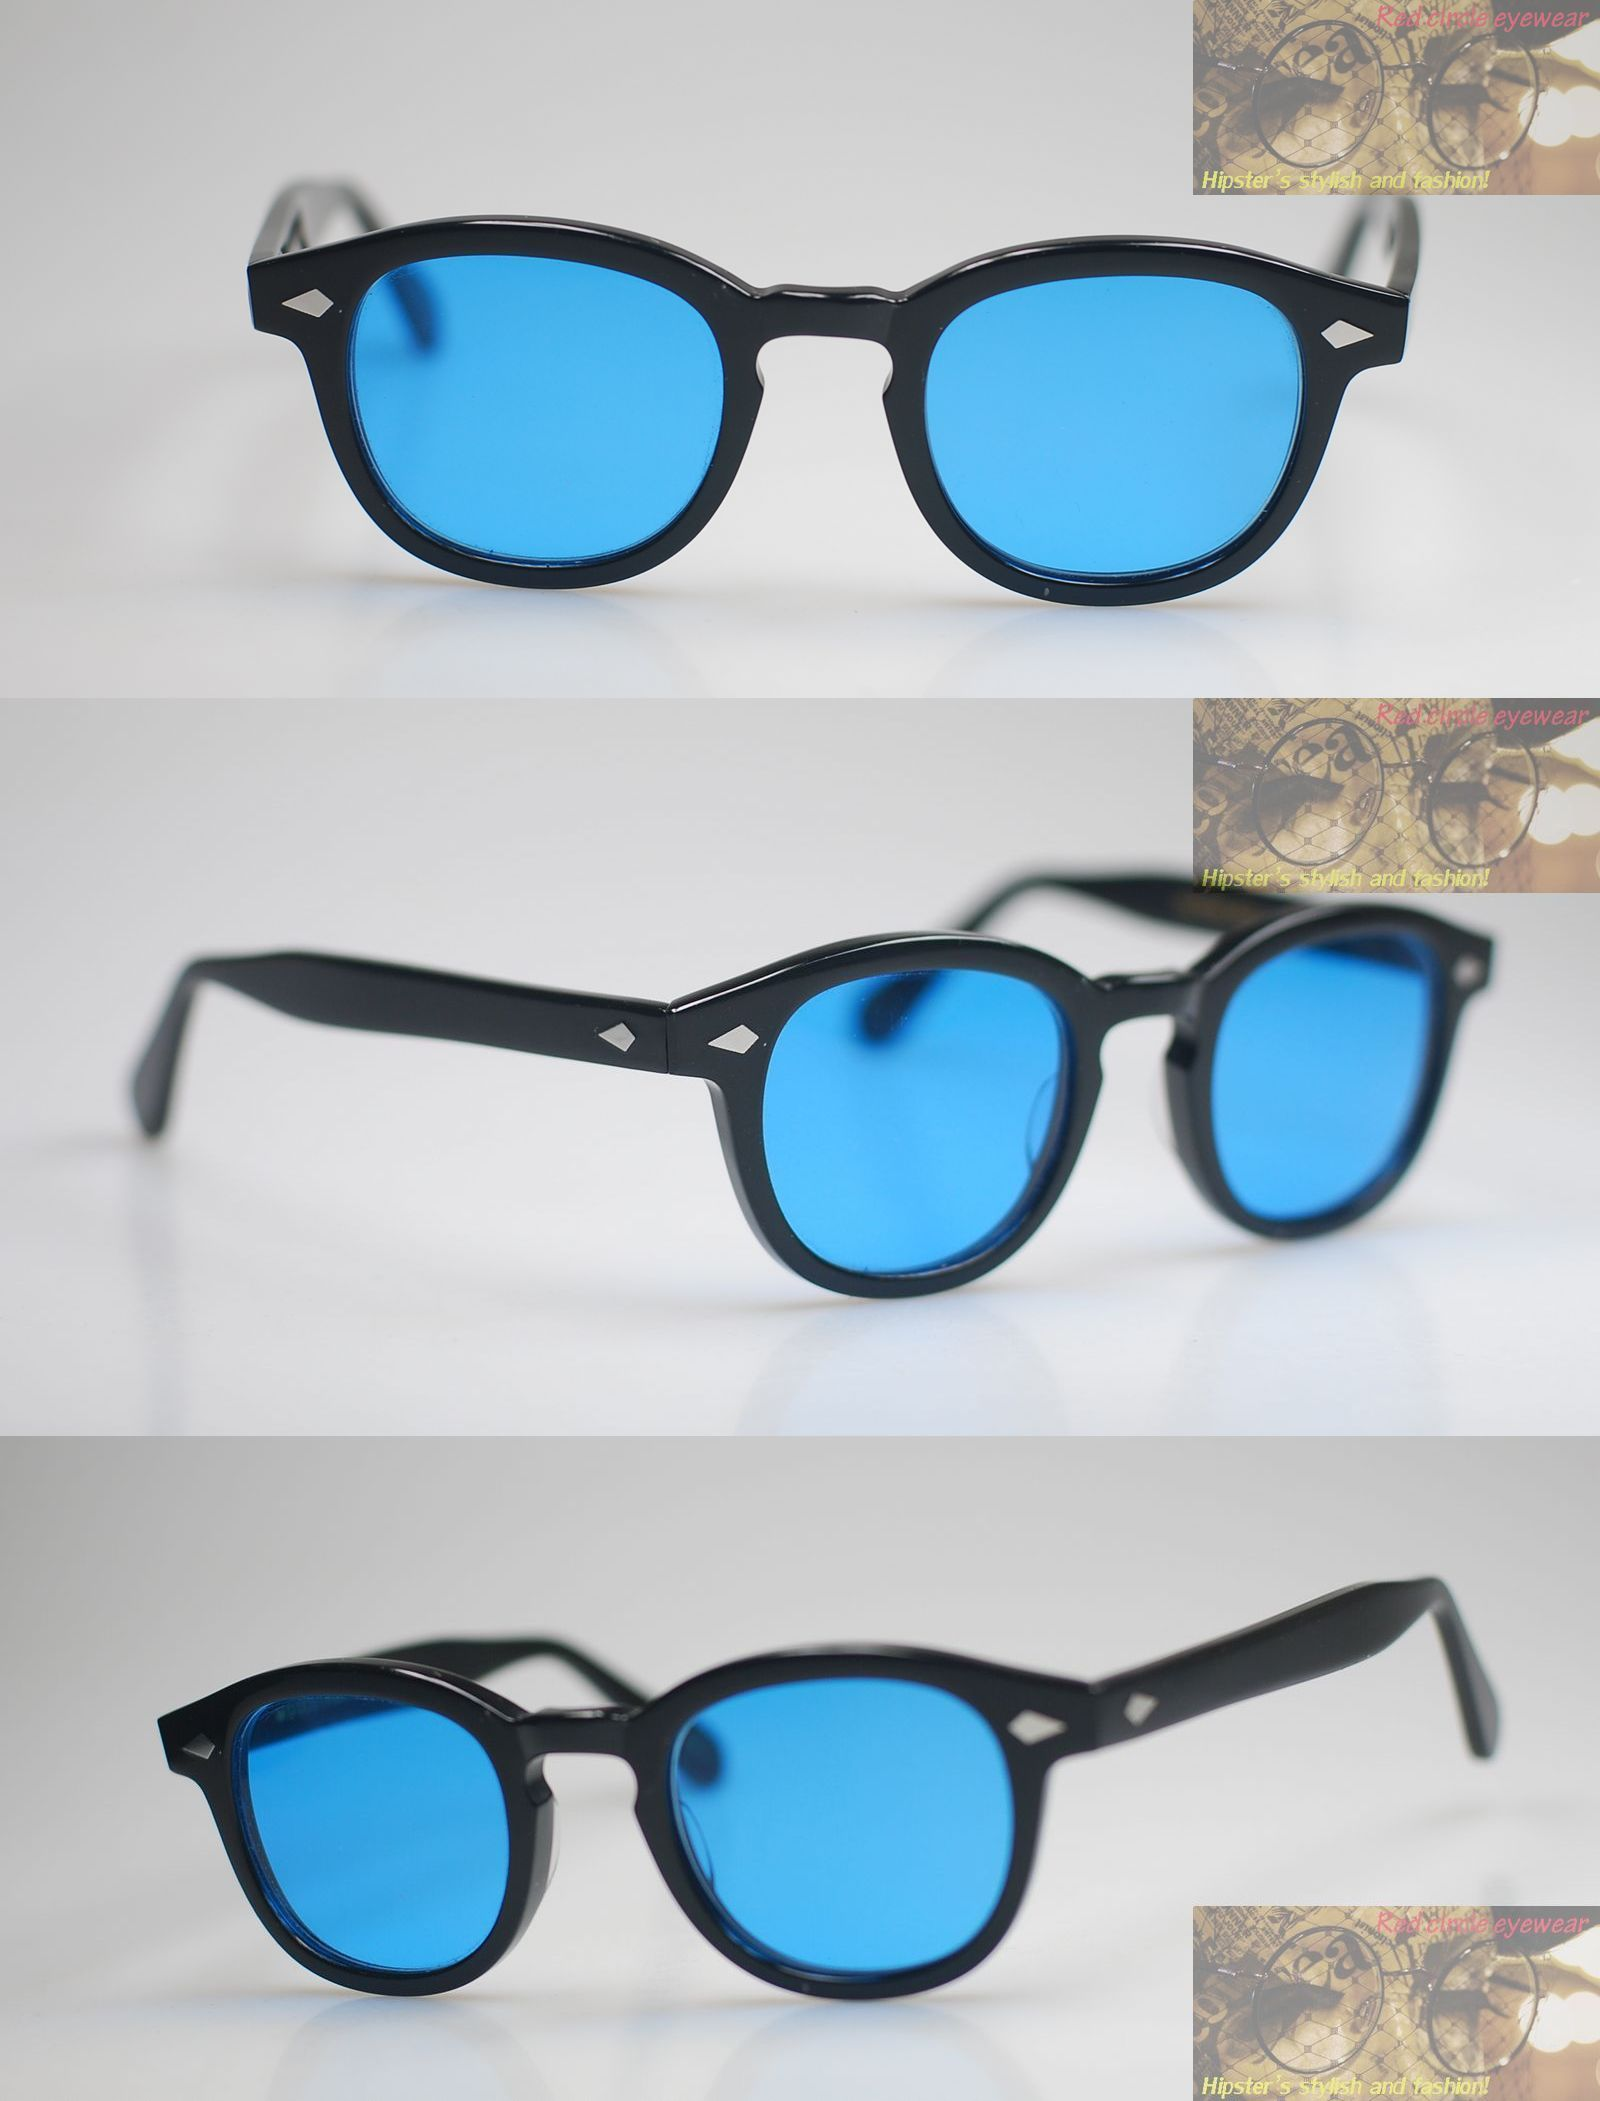 270cffd1862 Sunglasses 48559  Retro Vintage Johnny Depp Sunglasses Black L Frame With Blue  Lens Free Shipping -  BUY IT NOW ONLY   51.18 on eBay!